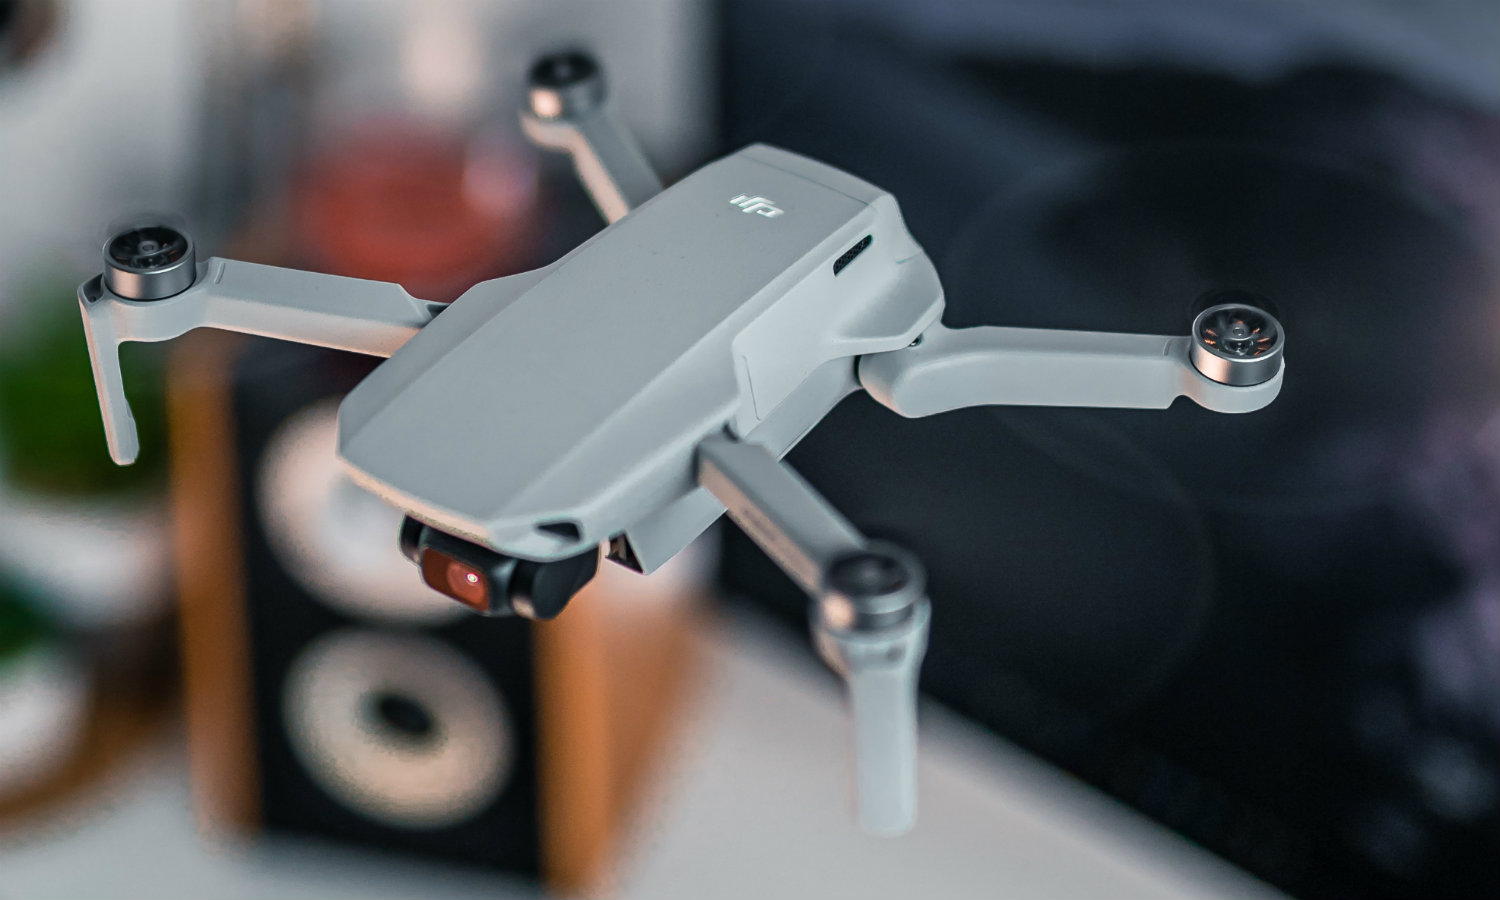 A drone hovering